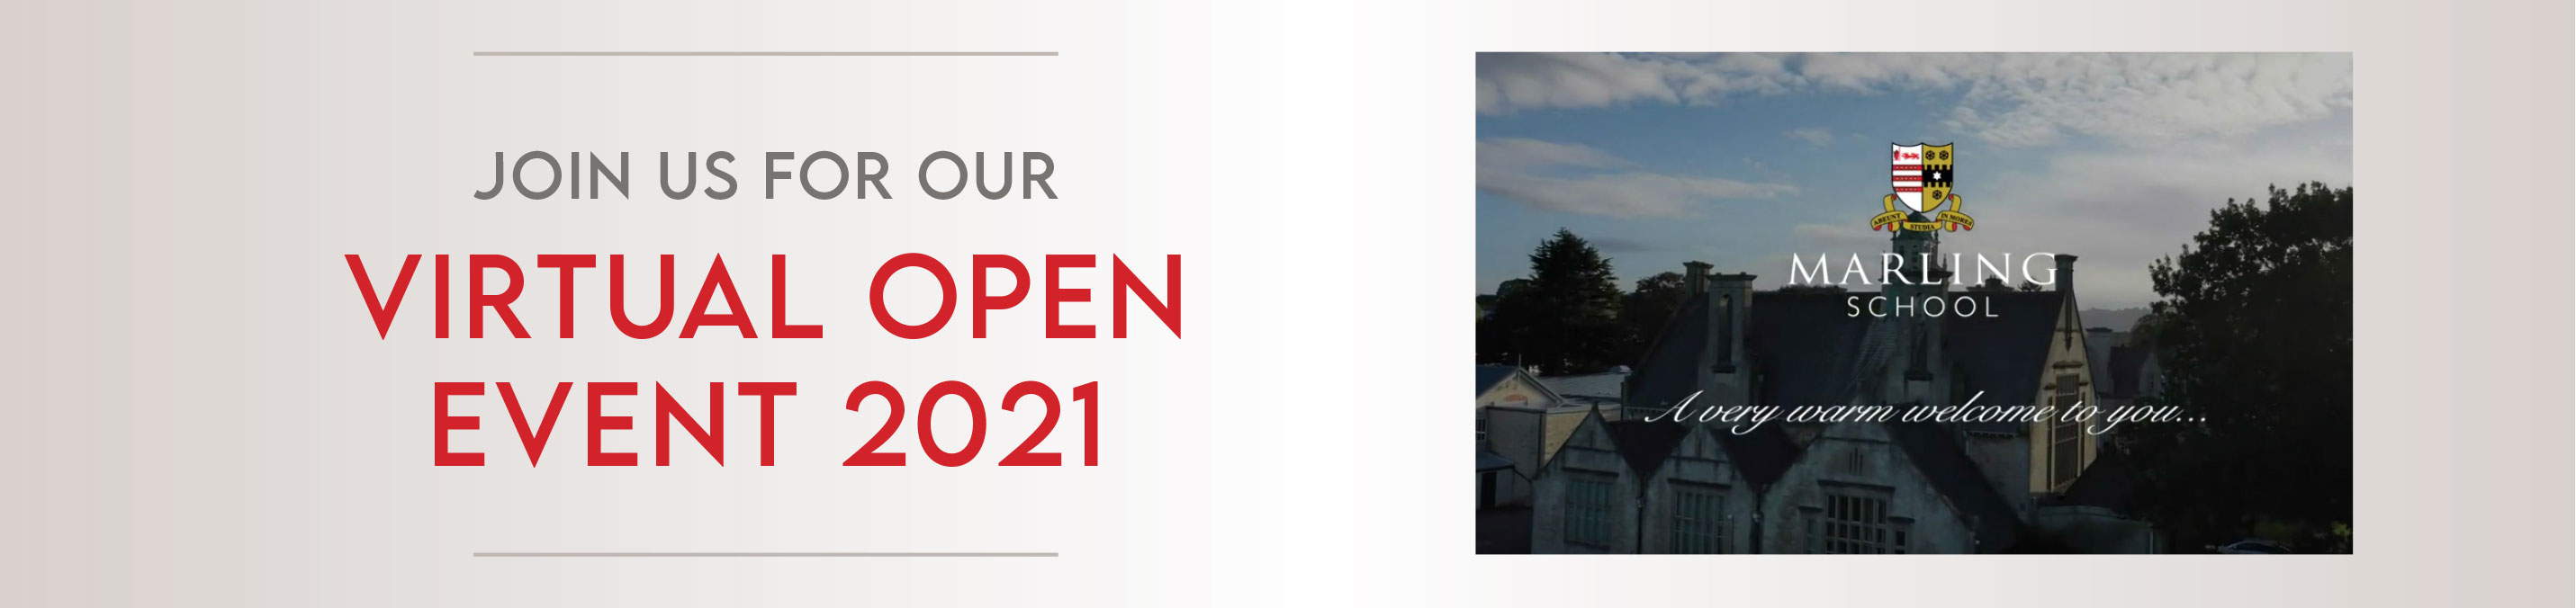 Virtual Open Event 2021